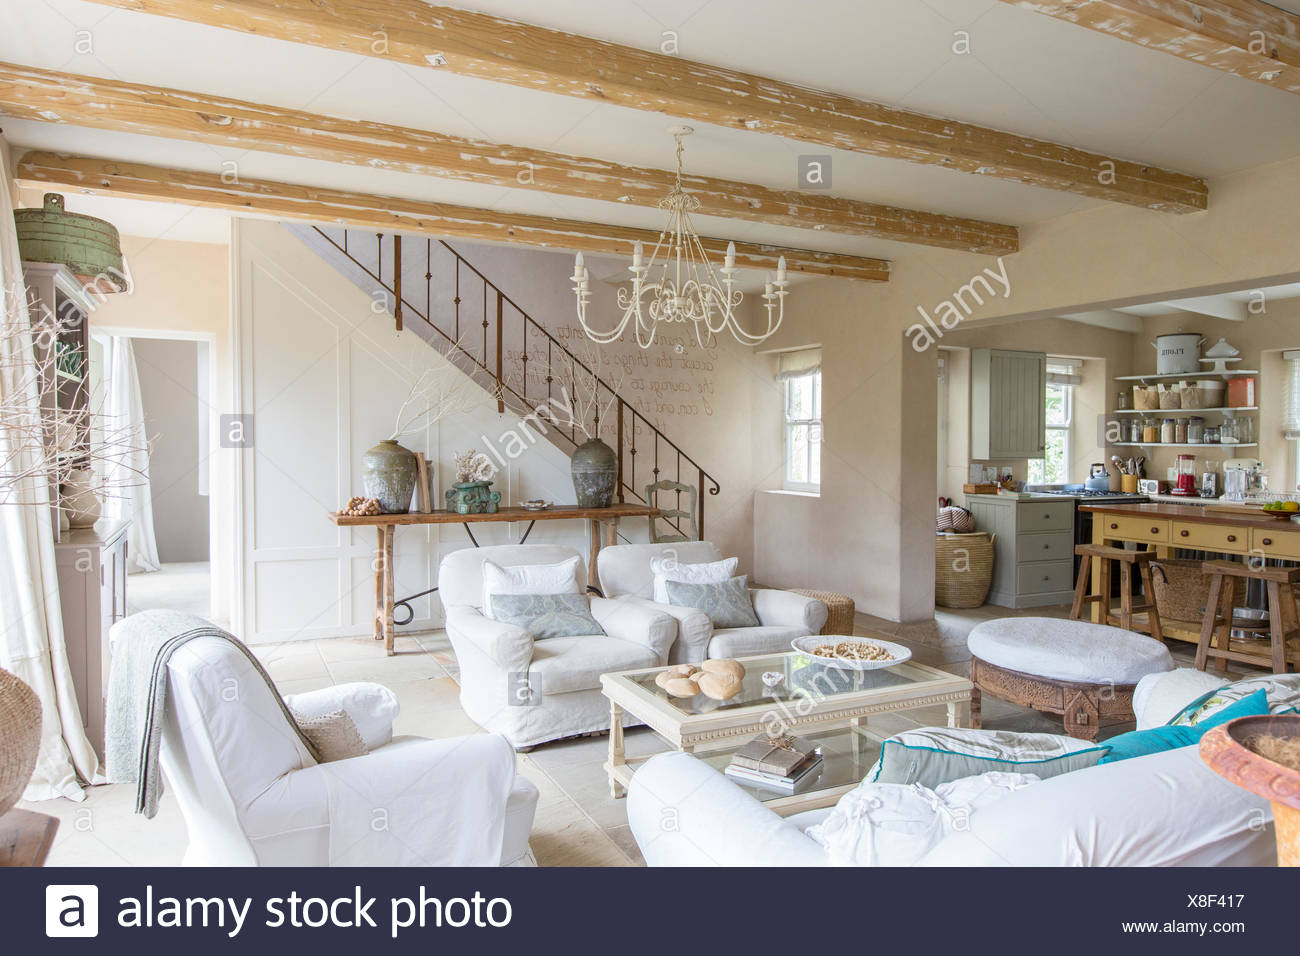 Living room of rustic house - Stock Image